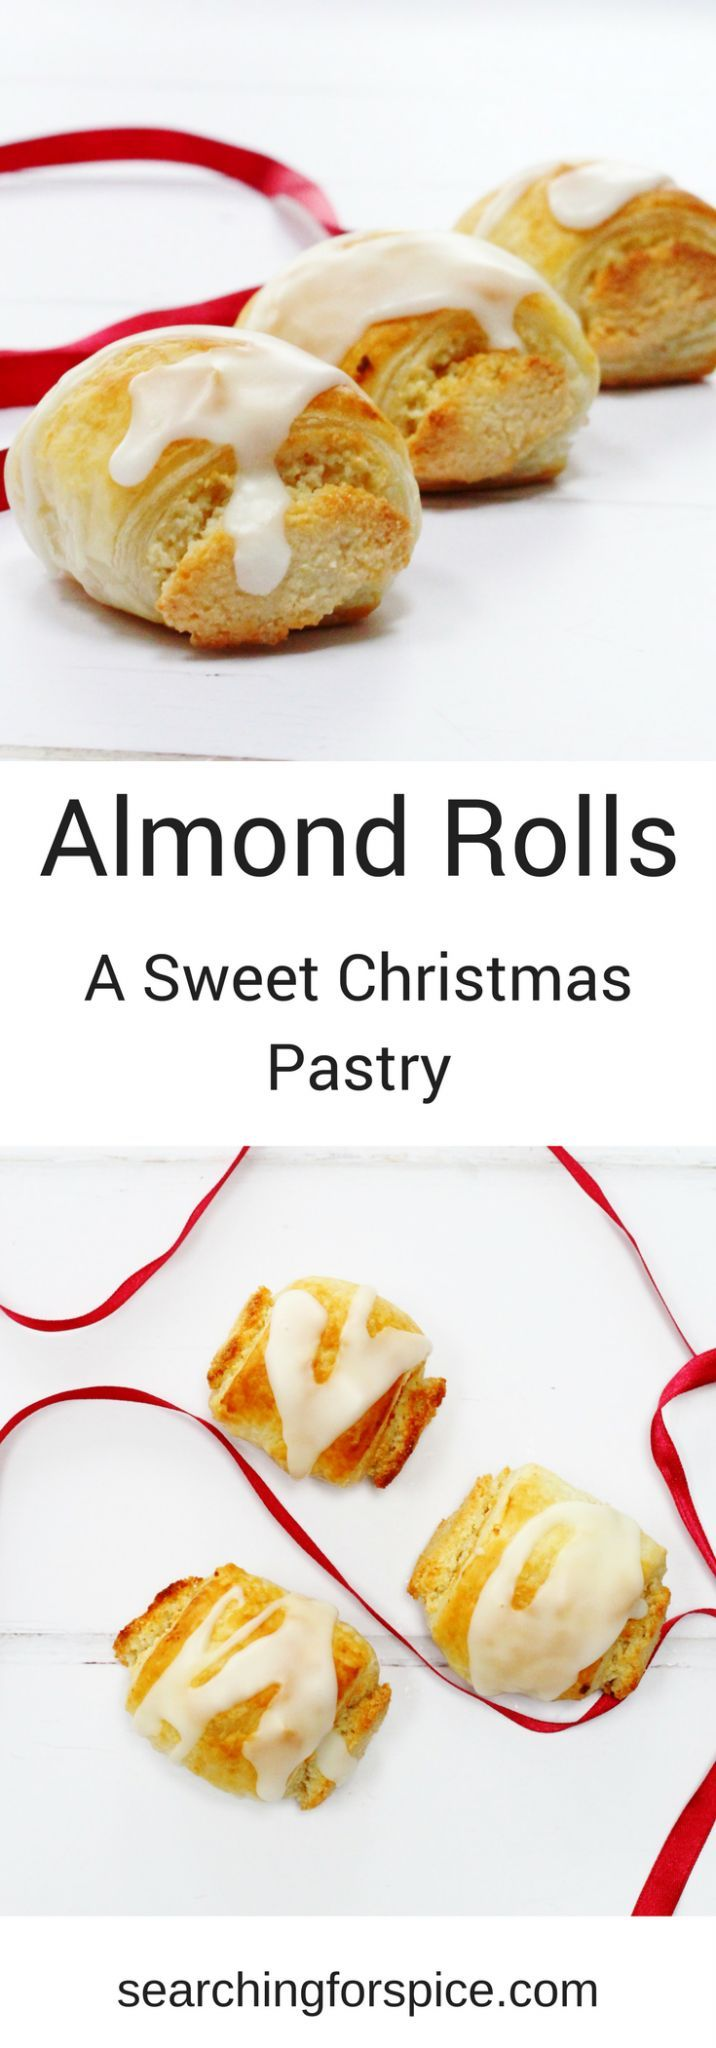 Almond rolls recipe. These sweet Christmas pastries are easy to make with ready rolled puff pastry wrapped around homemade almond paste or marzipan. The perfect Christmas pastry #Almondpastry #almondpaste #puffpastry #Christmas #Baking